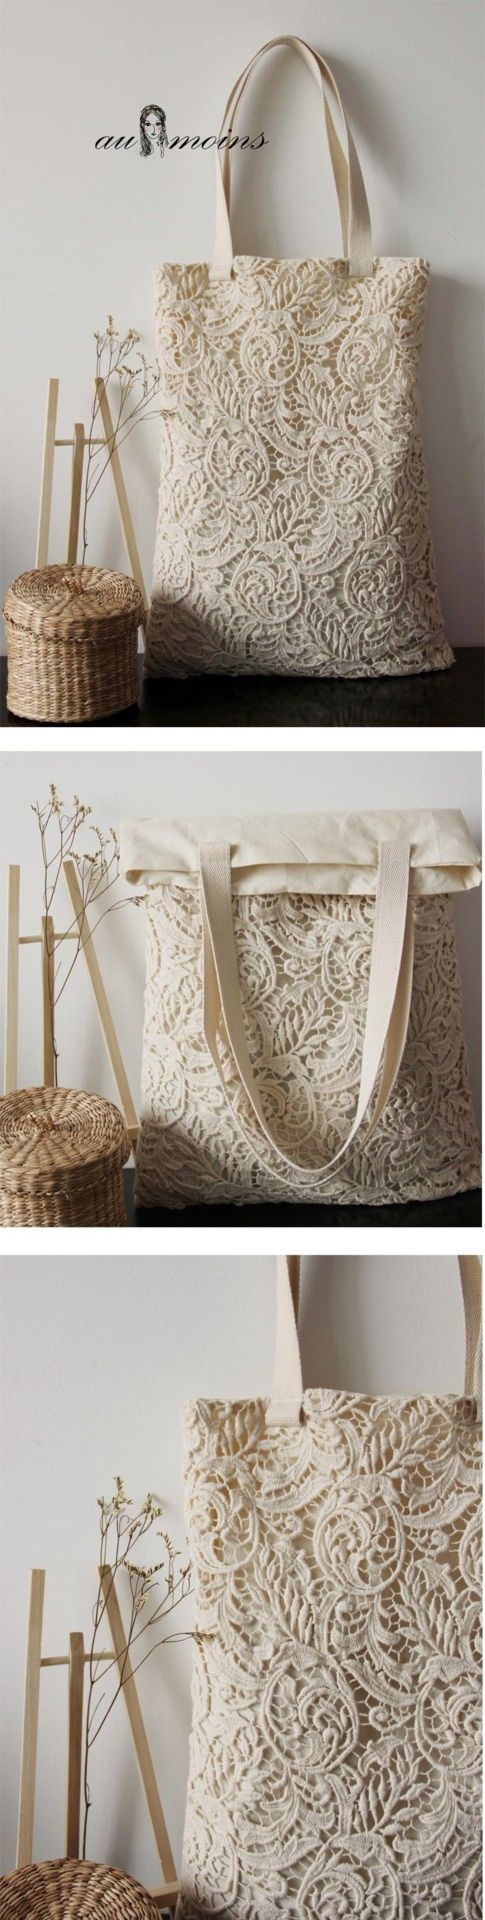 lace tote.  An old wedding dress maybe ??